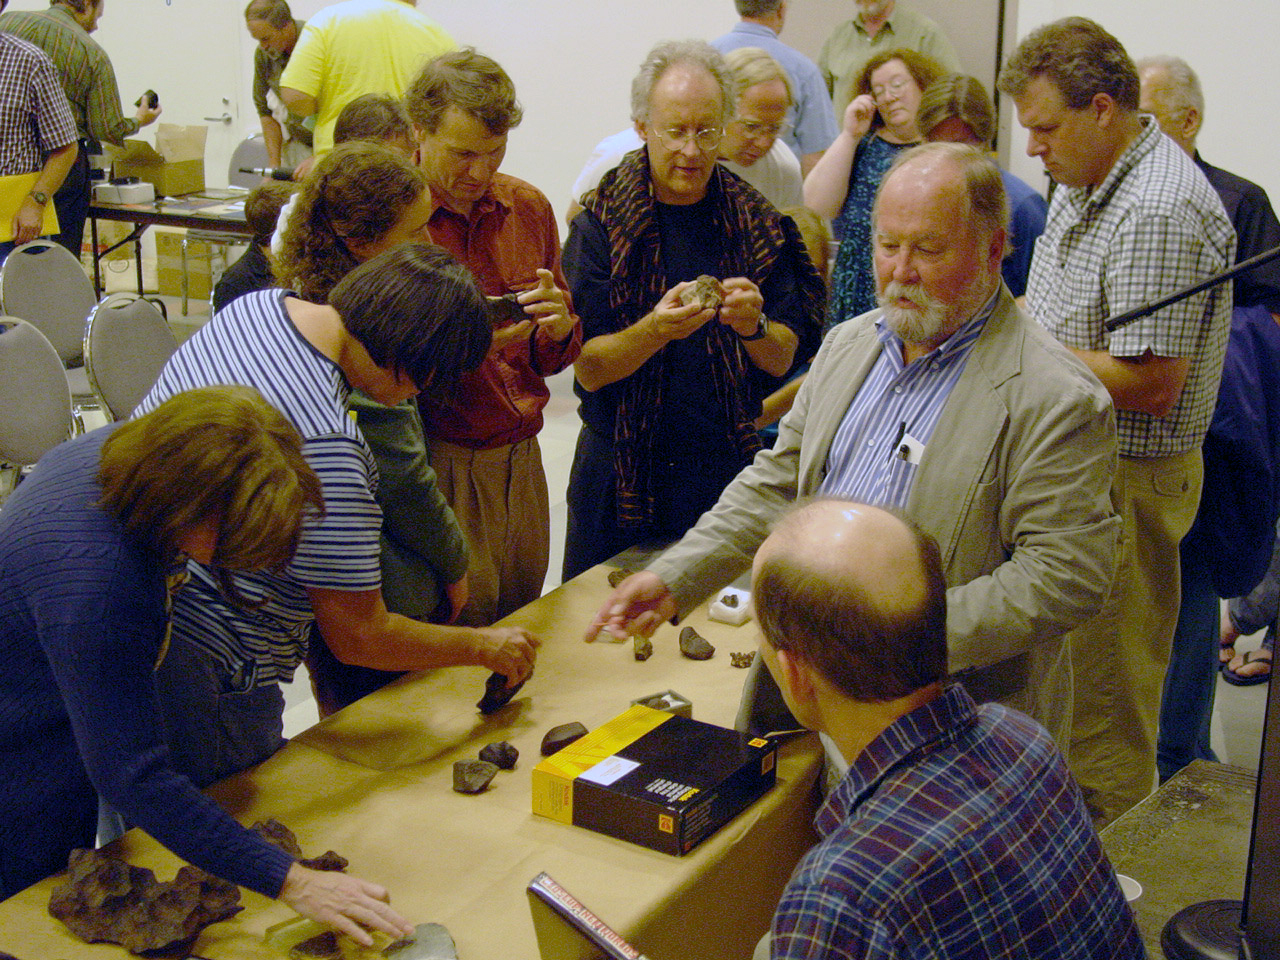 Dick explaining meteorites to crowd at OMSI 2002